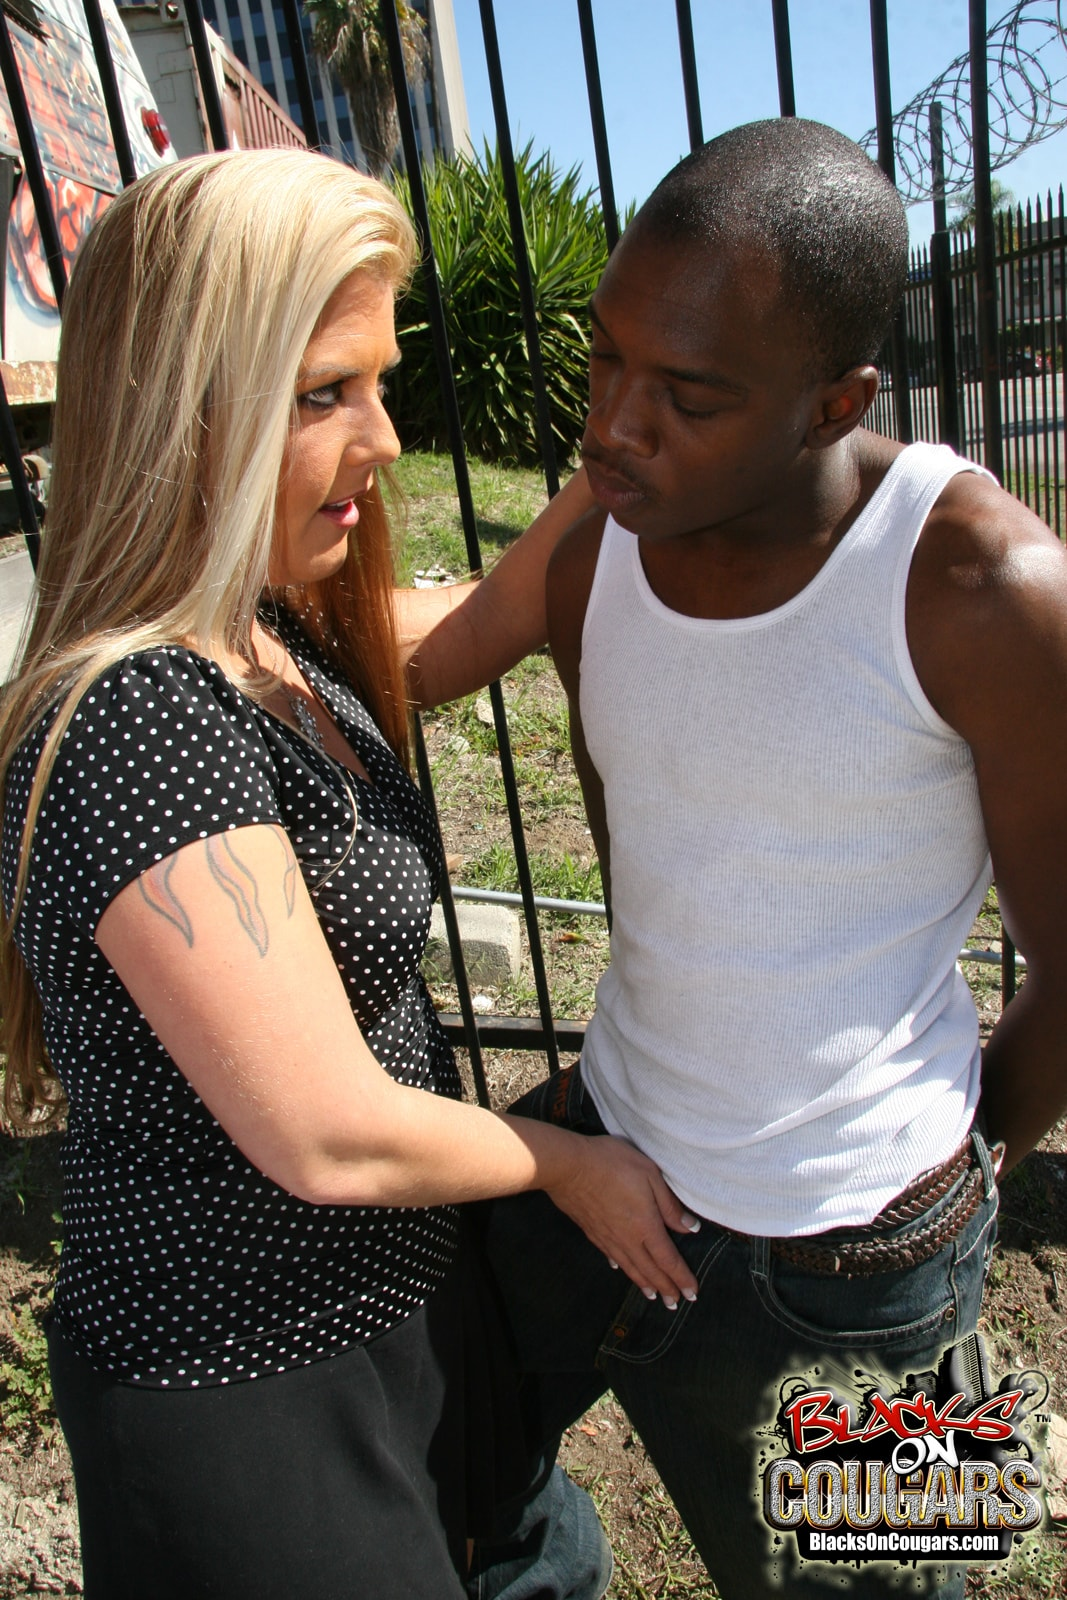 Dogfart '- Blacks On Cougars' starring Joclyn Stone (Photo 3)